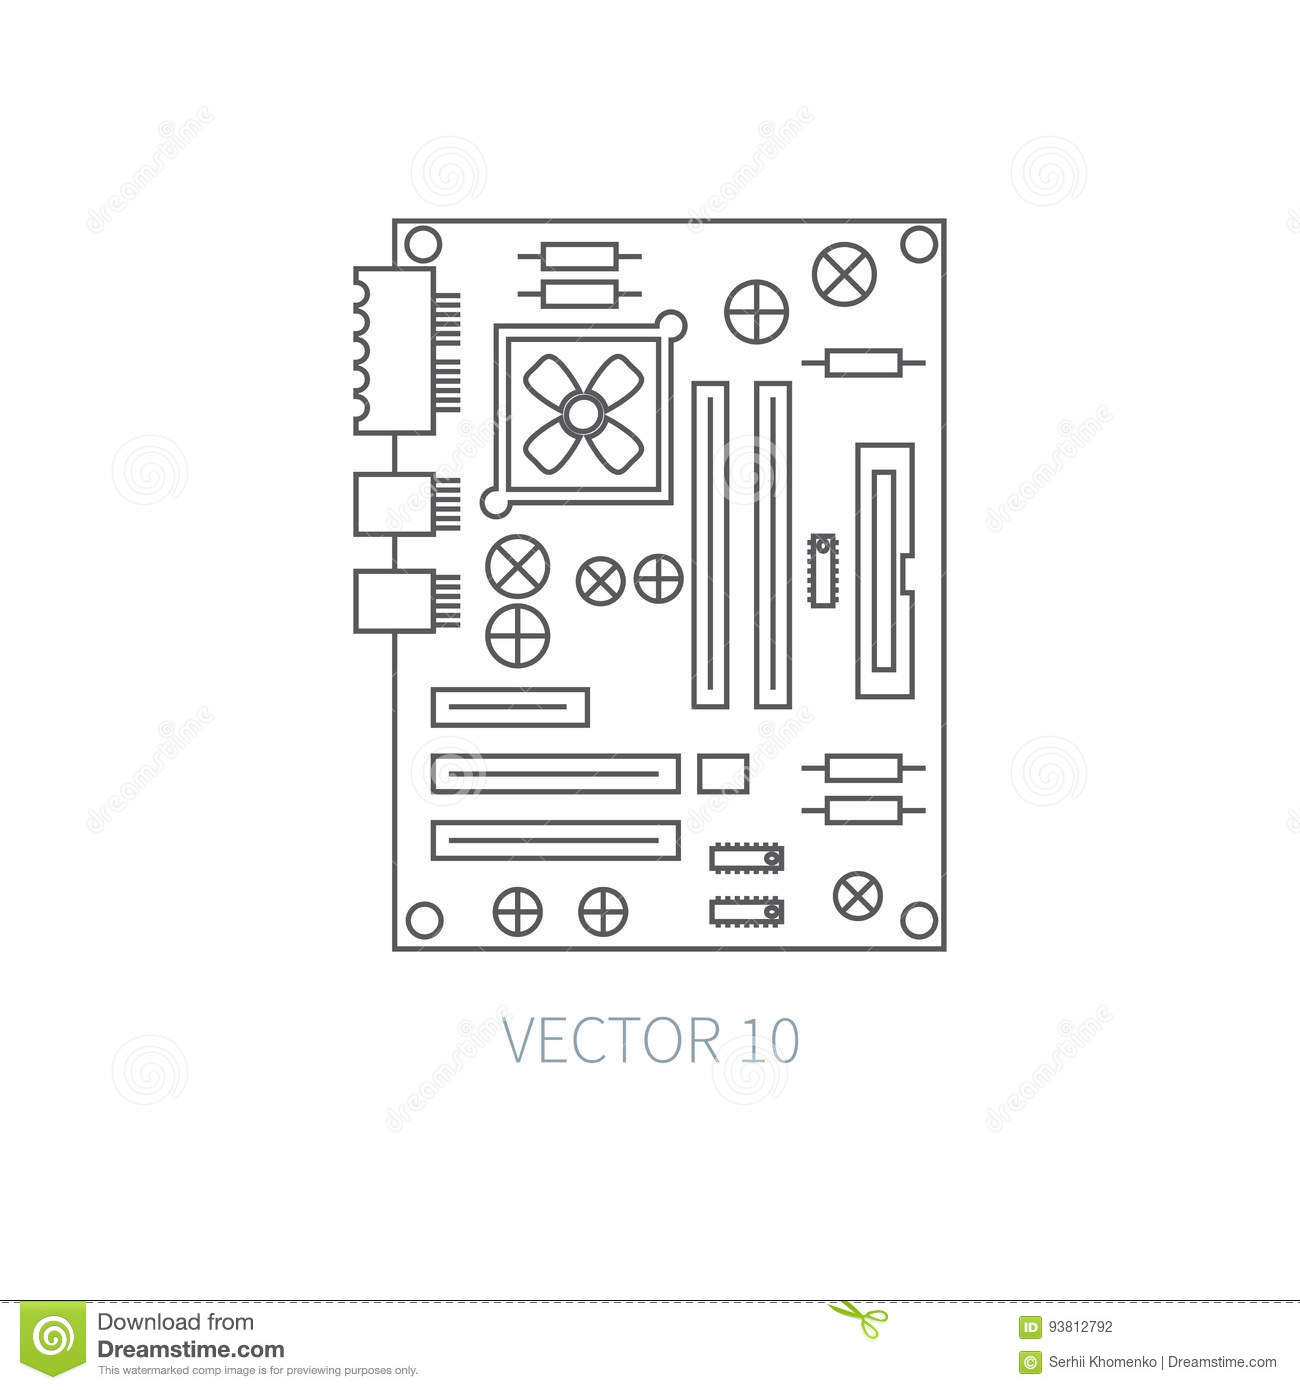 Motherboard simple diagram diy wiring diagrams flat line vector computer part icon motherboard cartoon style rh dreamstime com computer motherboard diagram with label simple motherboard diagram with ccuart Image collections